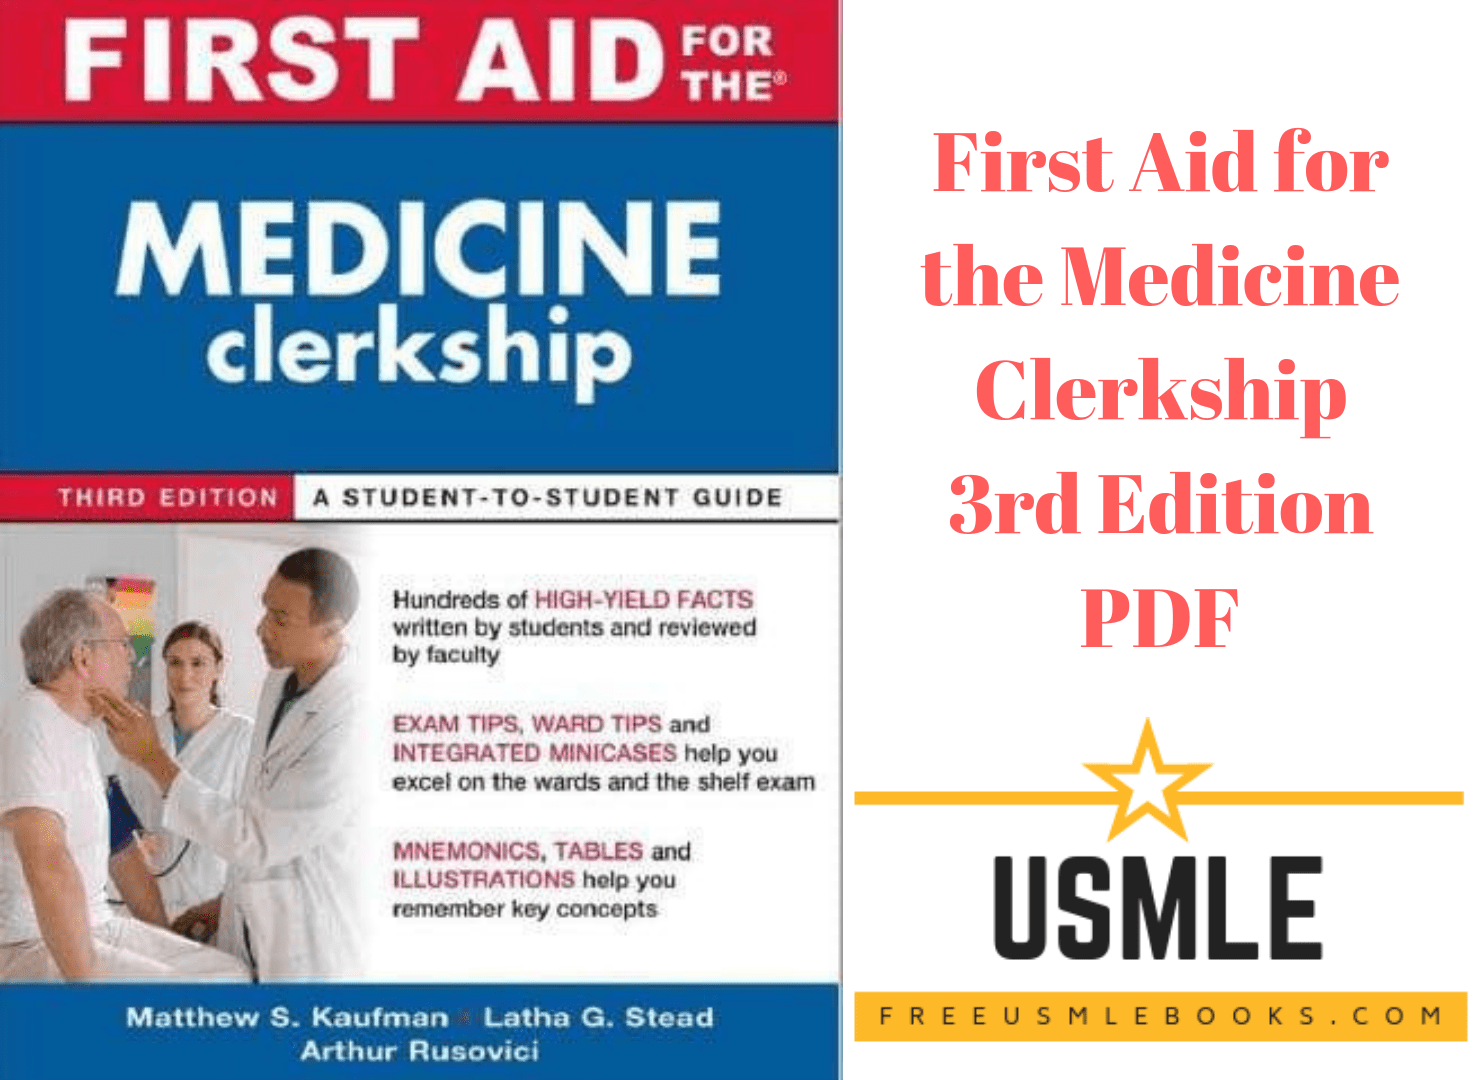 Download First Aid for the Medicine Clerkship 3rd Edition